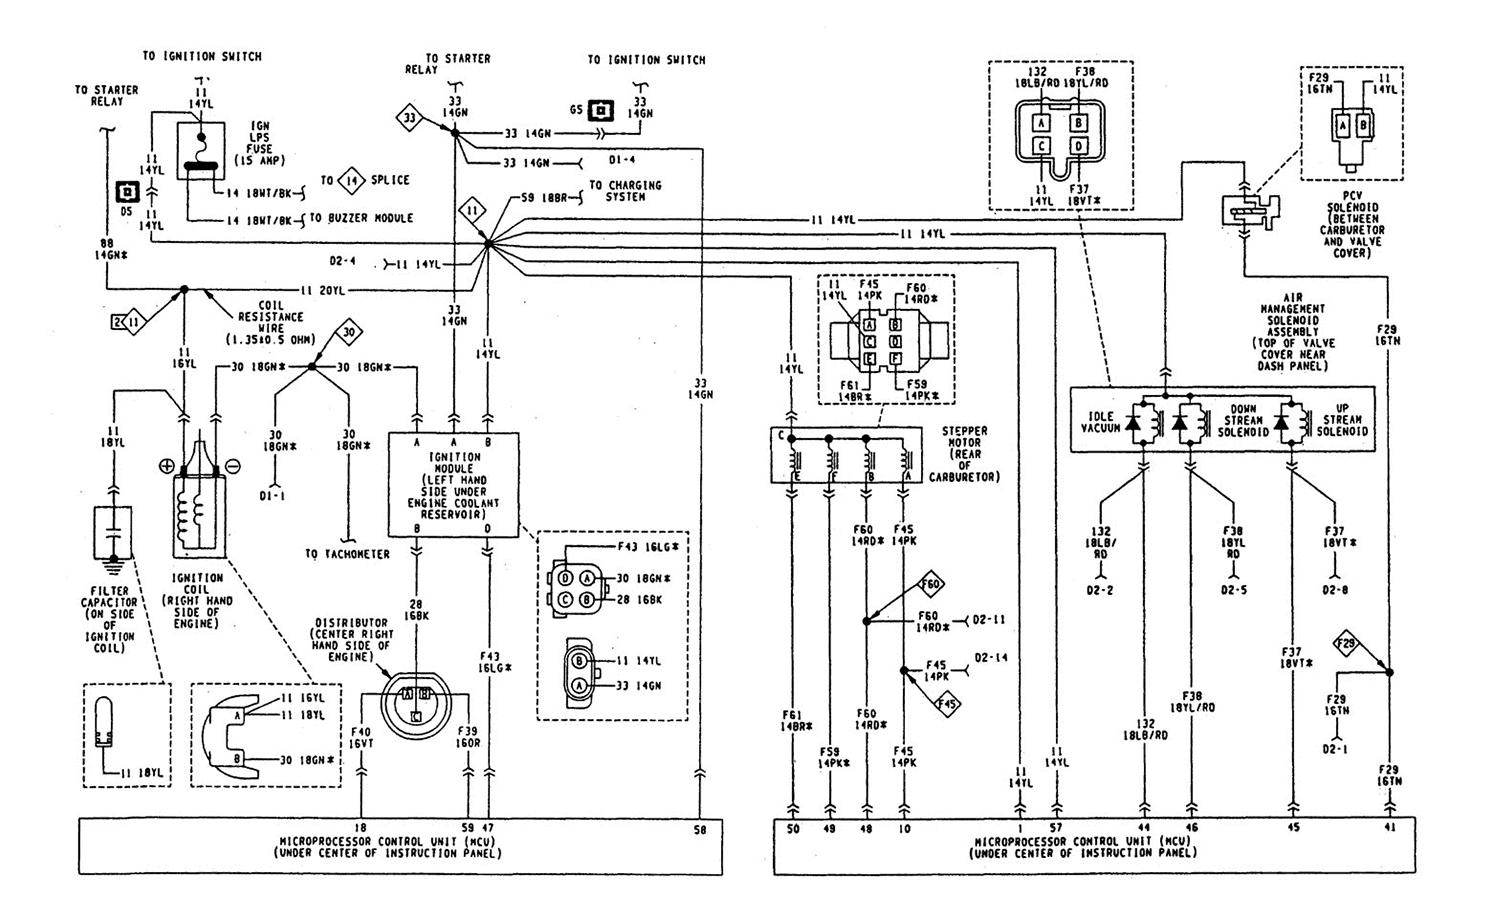 Wiring Diagram Together With 1995 Jeep Wrangler Yj Wiring Diagram